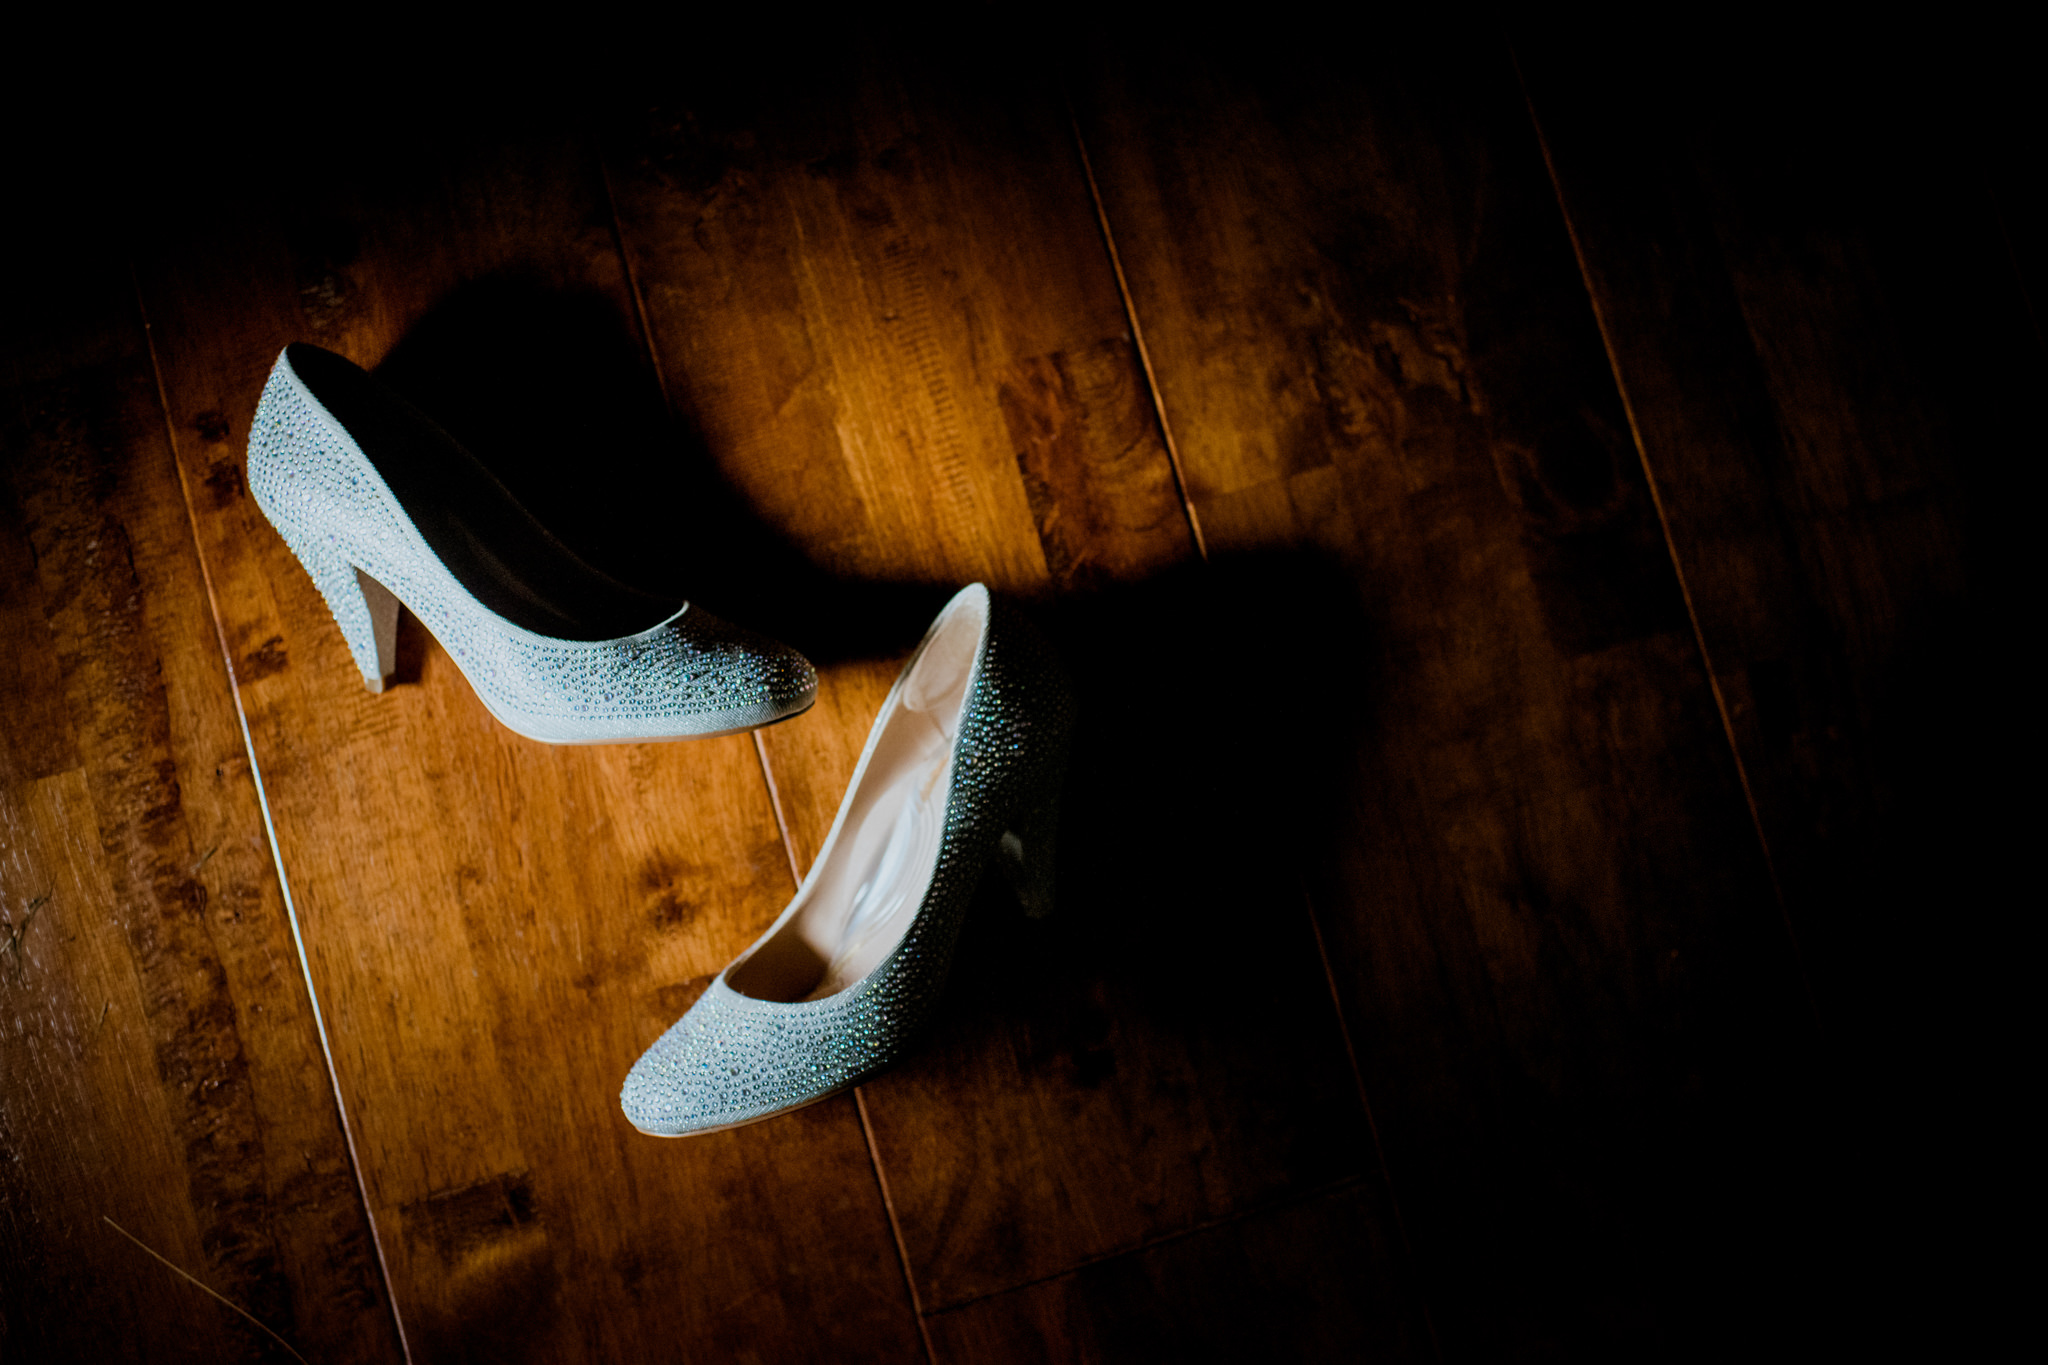 Sparkly wedding shoes lie on a wooden floor in a spot of soft light